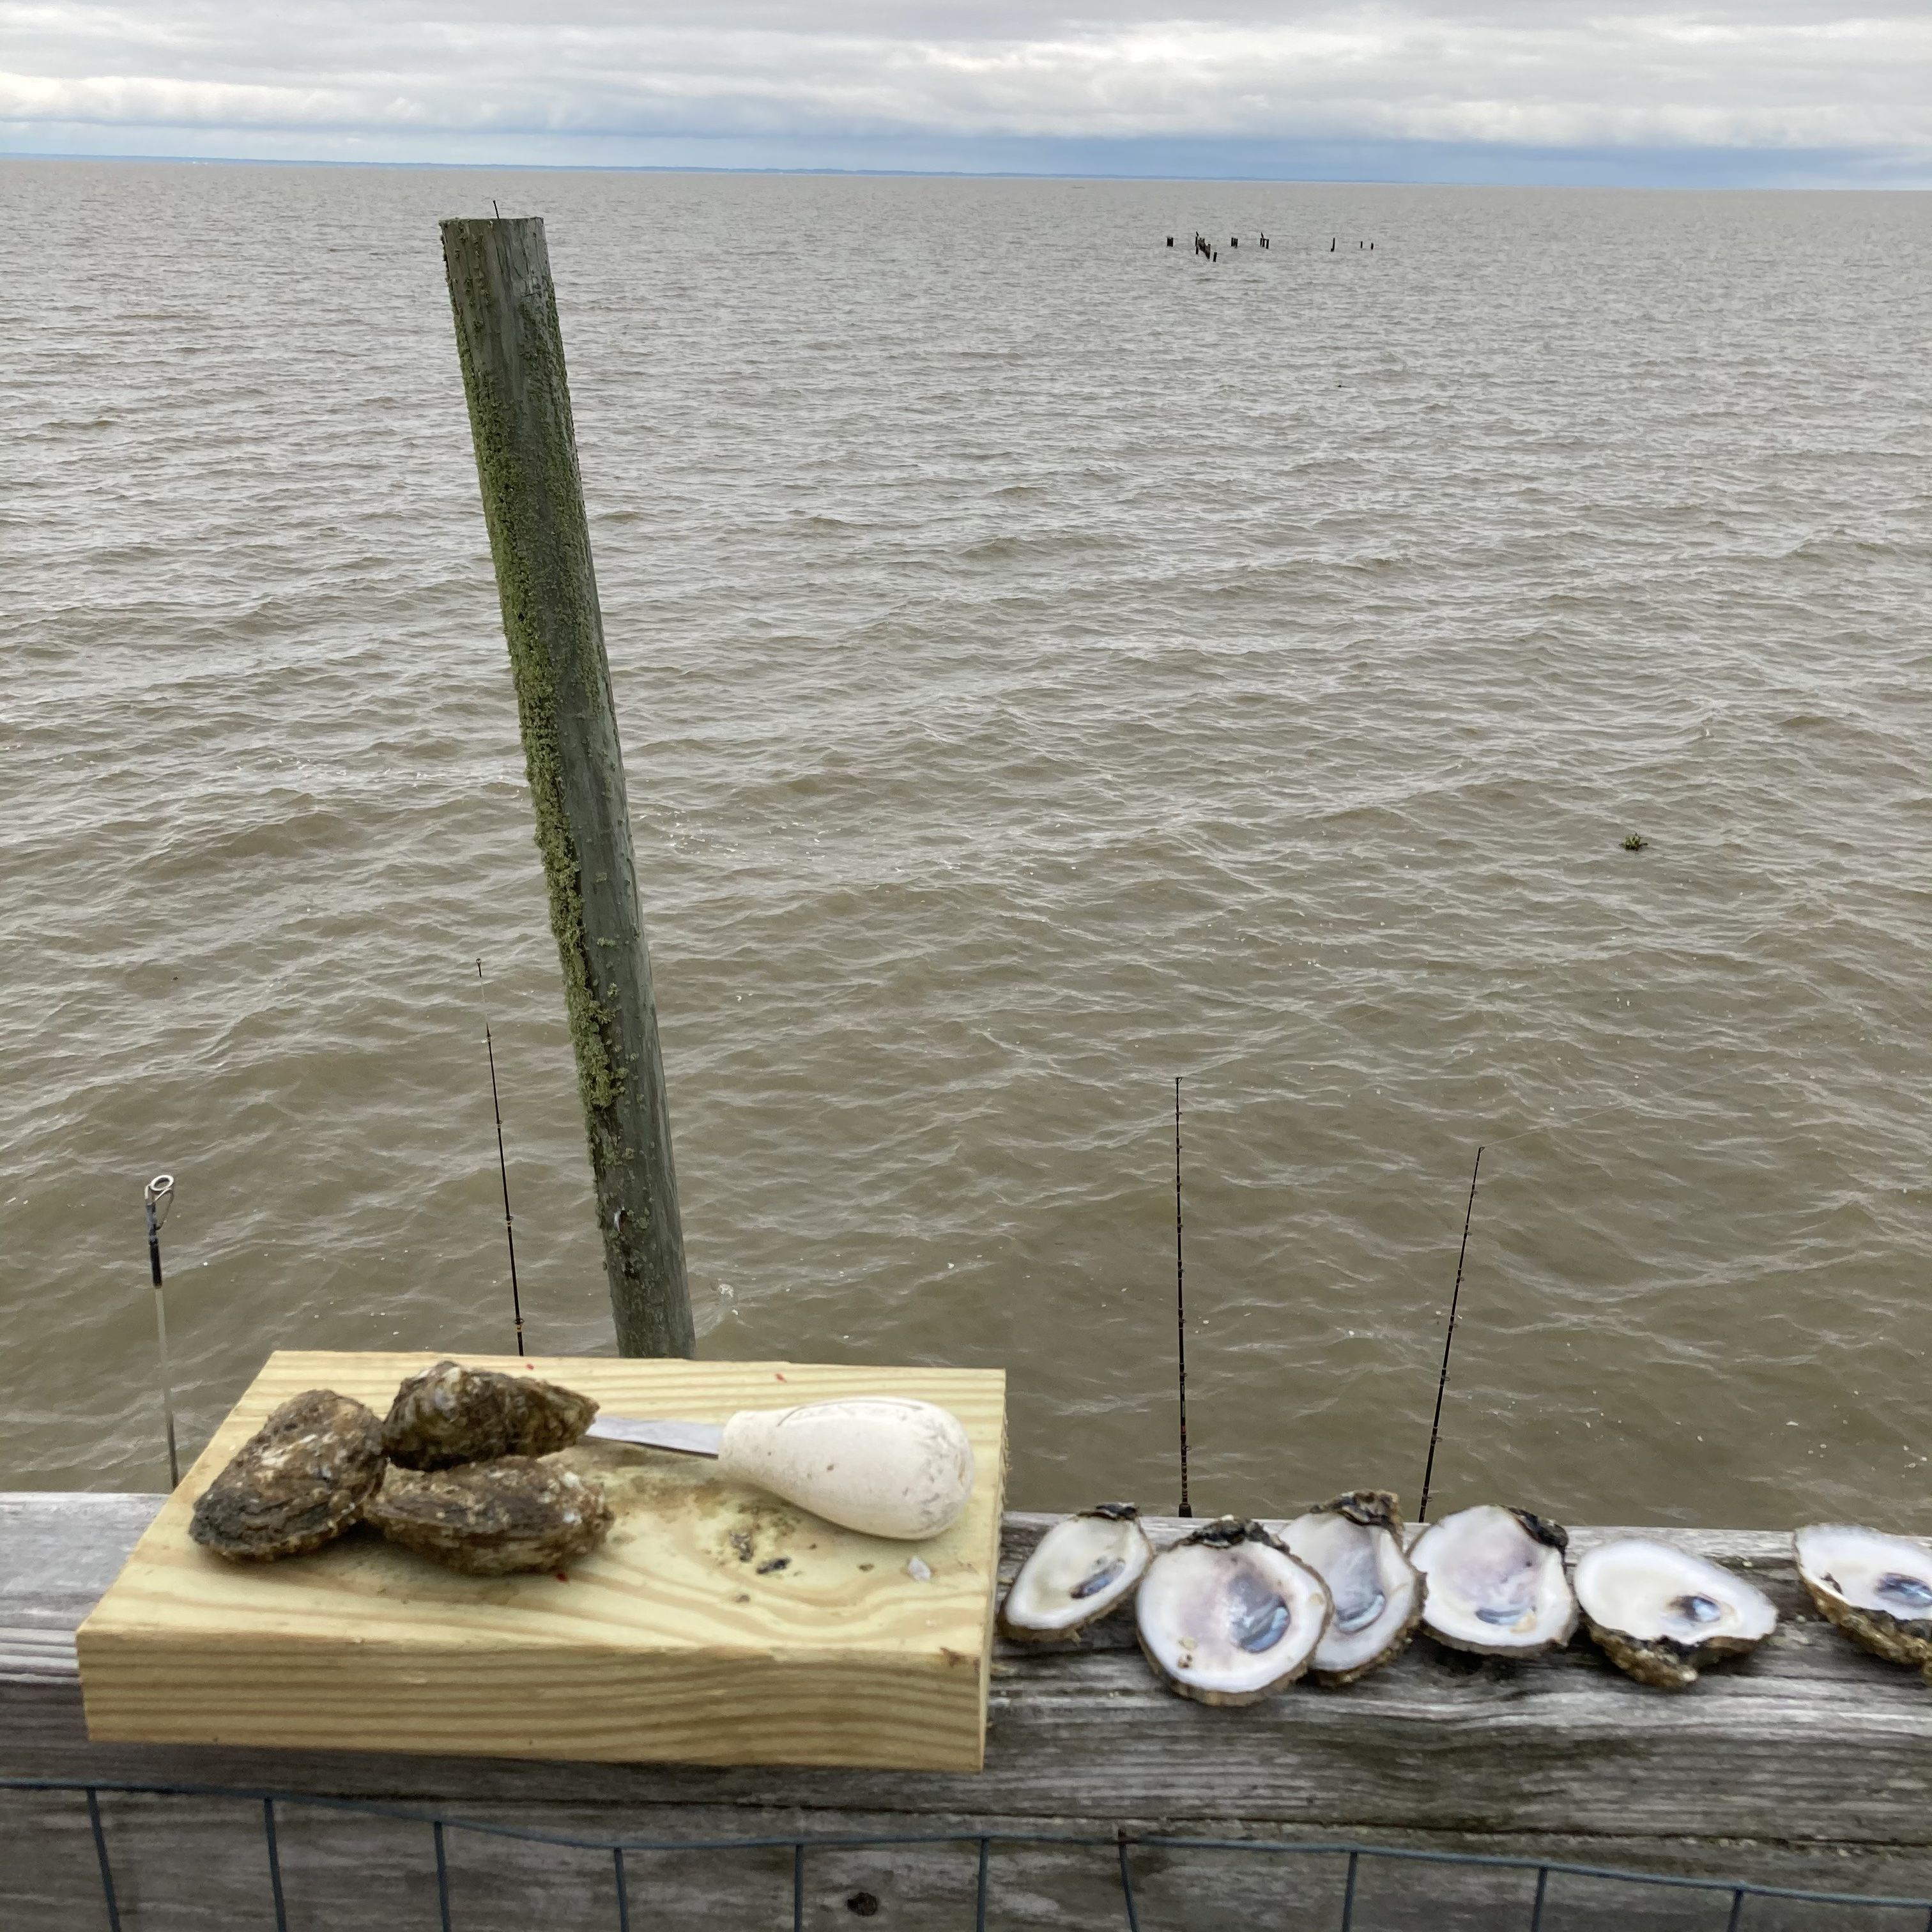 Whole and shucked oysters on a ledge overlooking the water.